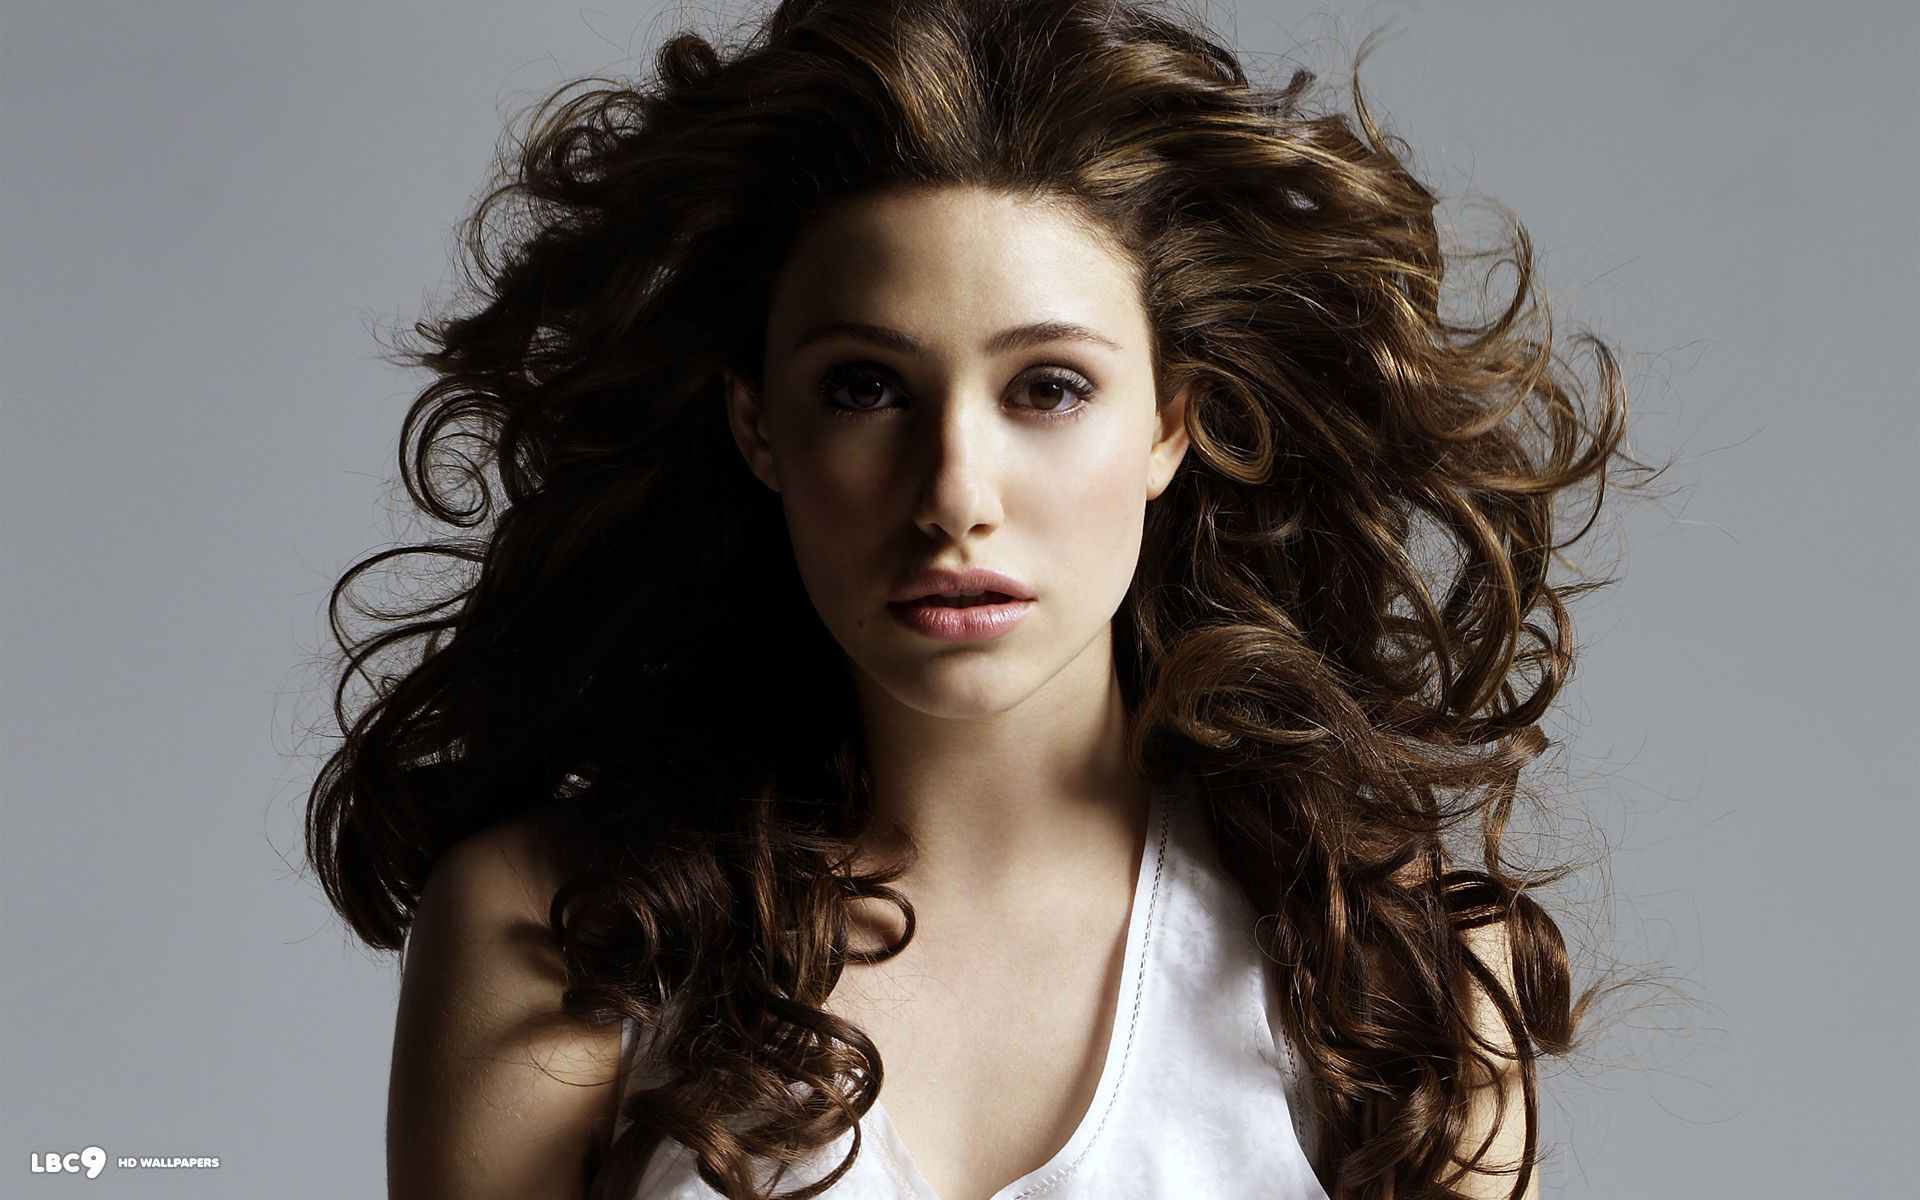 emmy rossum wallpapers and actresses hd backgrounds | 4 annealer's